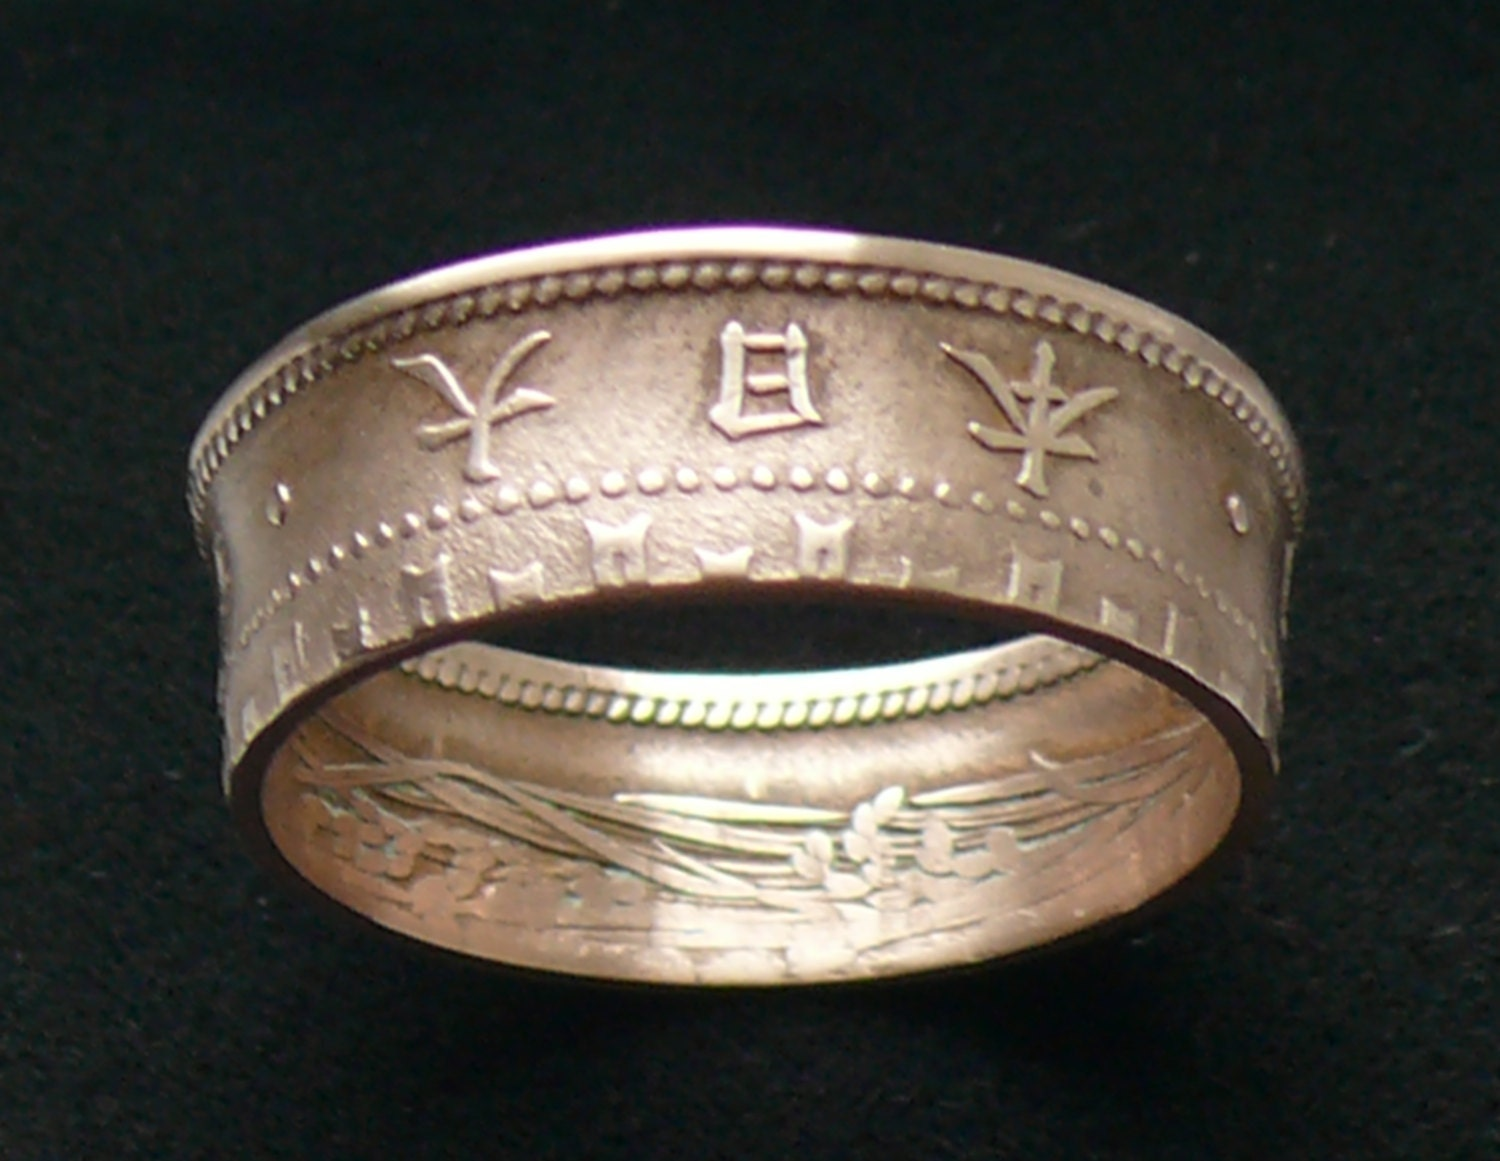 Men's Bronze Coin Ring 1901 Japan 1 Sen Ring By. Mens Three Wedding Rings. Cognac Engagement Rings. Compassion Rings. Kris Humphries Ring Engagement Rings. Agnes Scott Rings. Diamond Indian Wedding Rings. Vow Renewal Wedding Rings. Okstate Rings